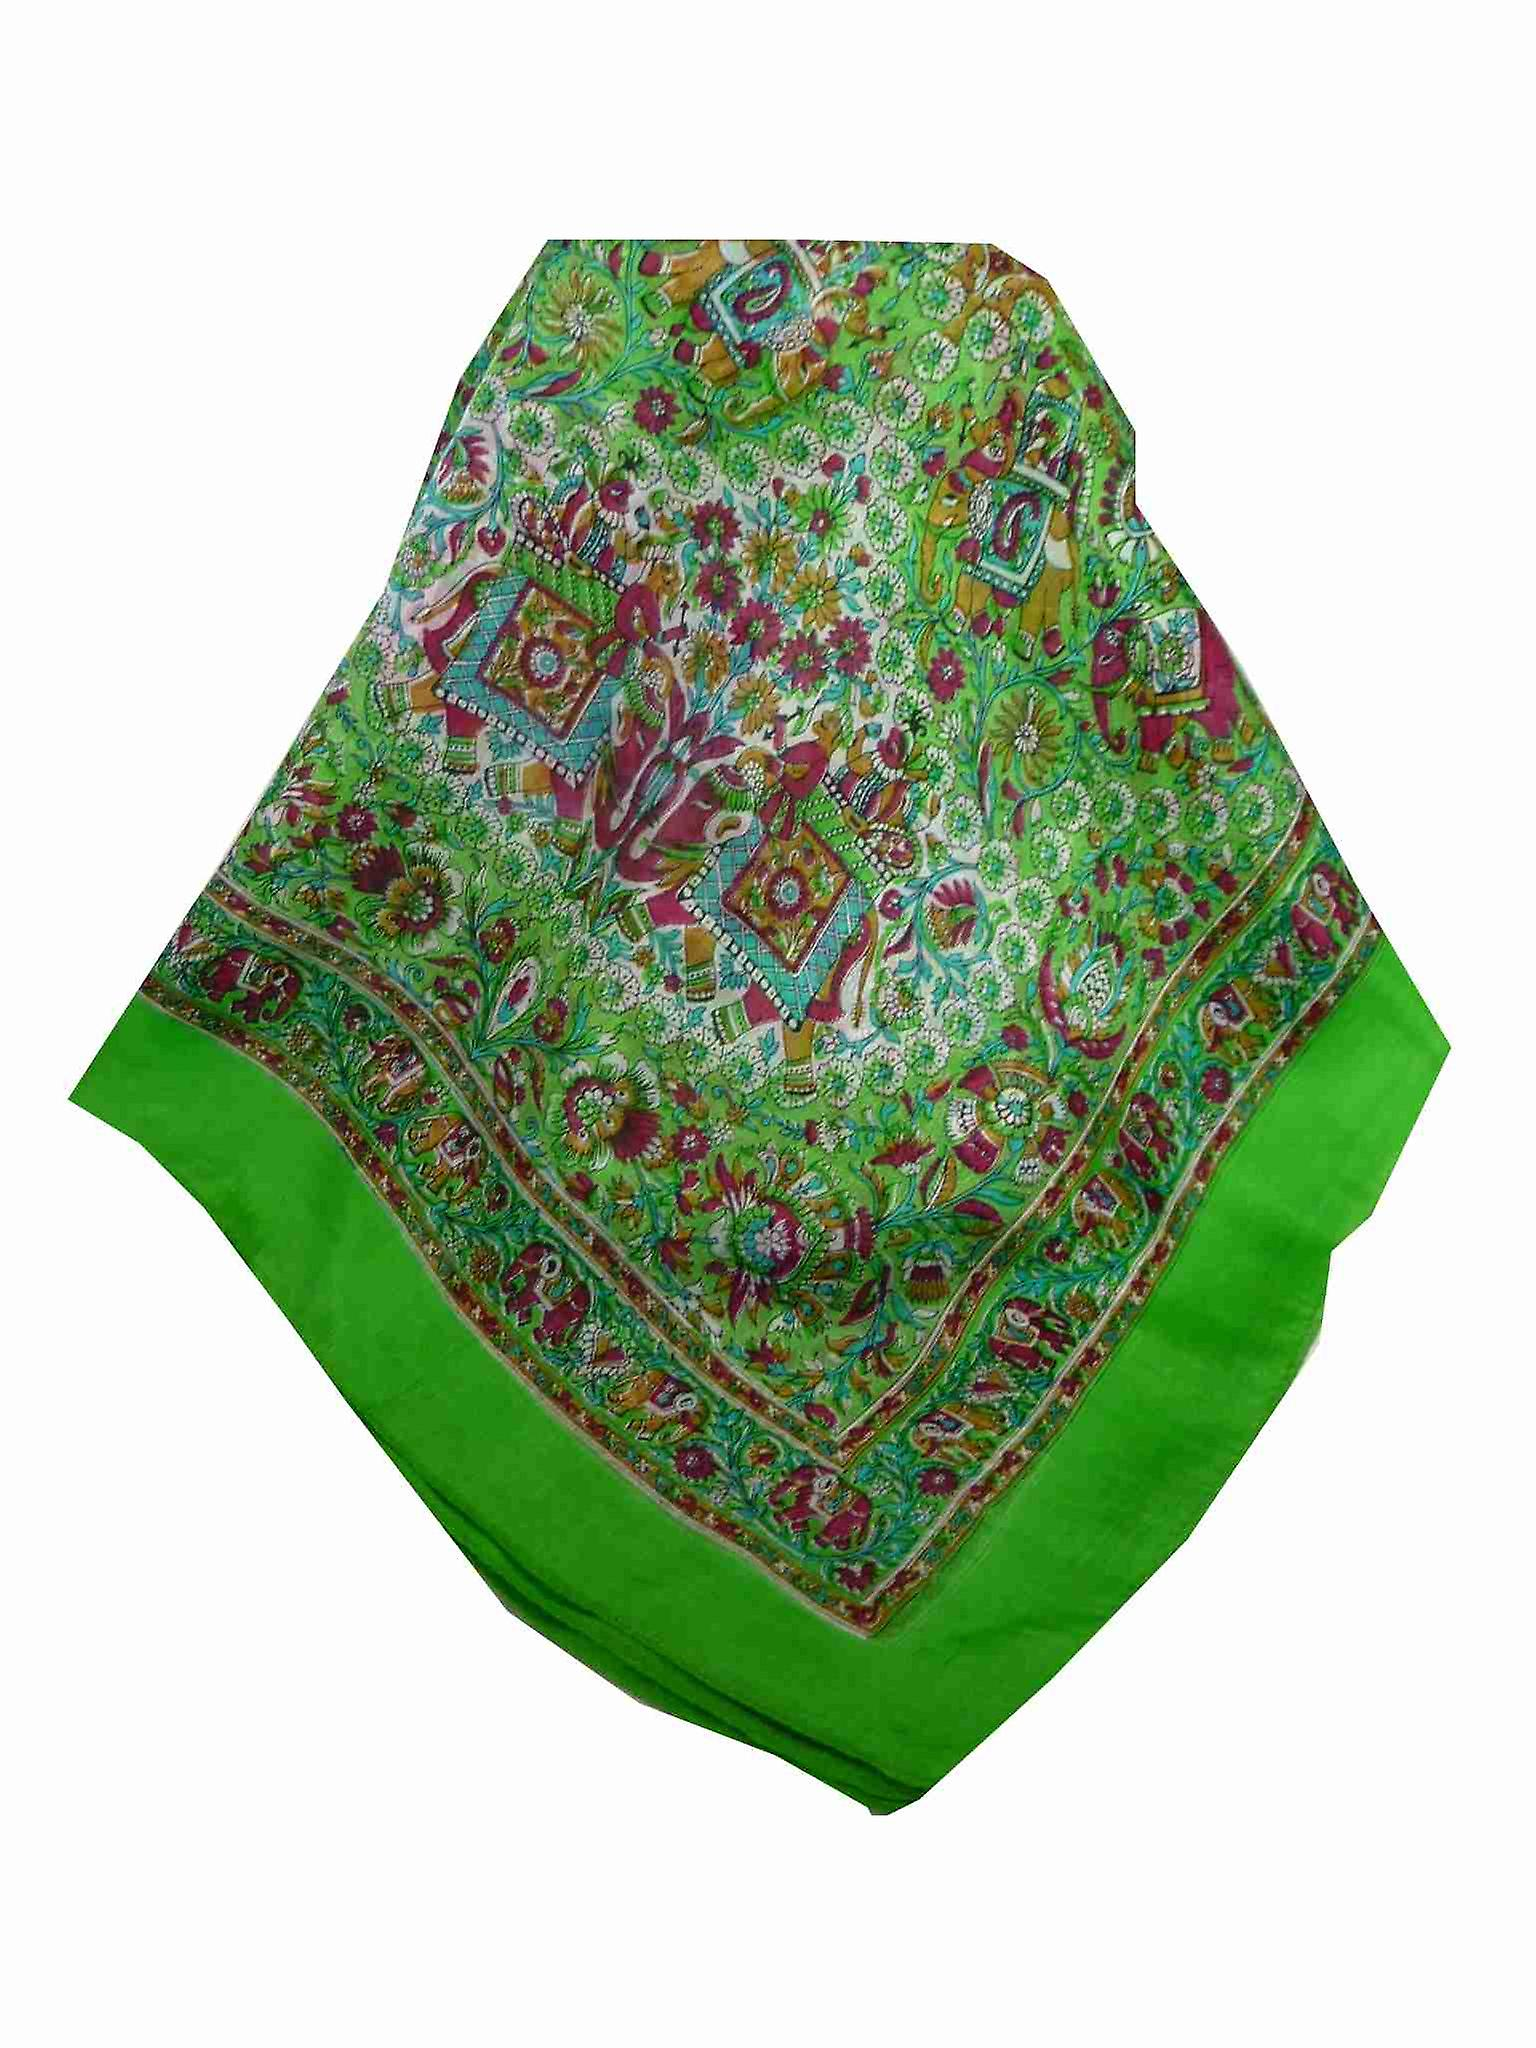 Mulberry Silk Traditional Square Scarf Har Citron Vert by Pashmina & Silk